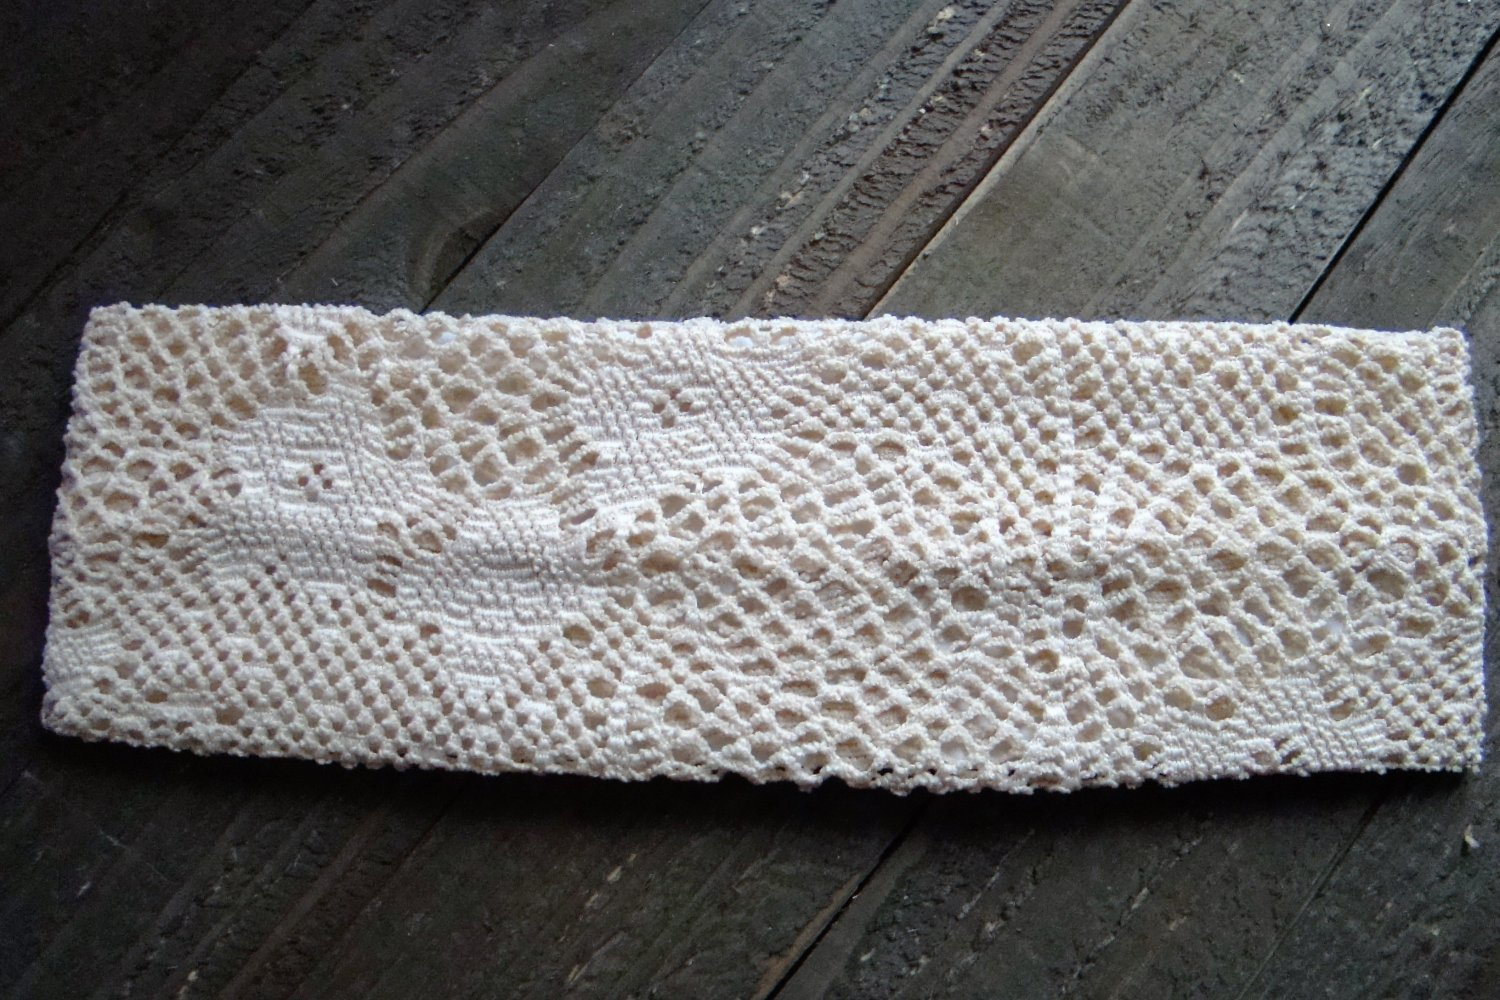 Cream Crochet Knit Woven Lace Stretch Wide Headband Wrap Hair Accessory Polyester